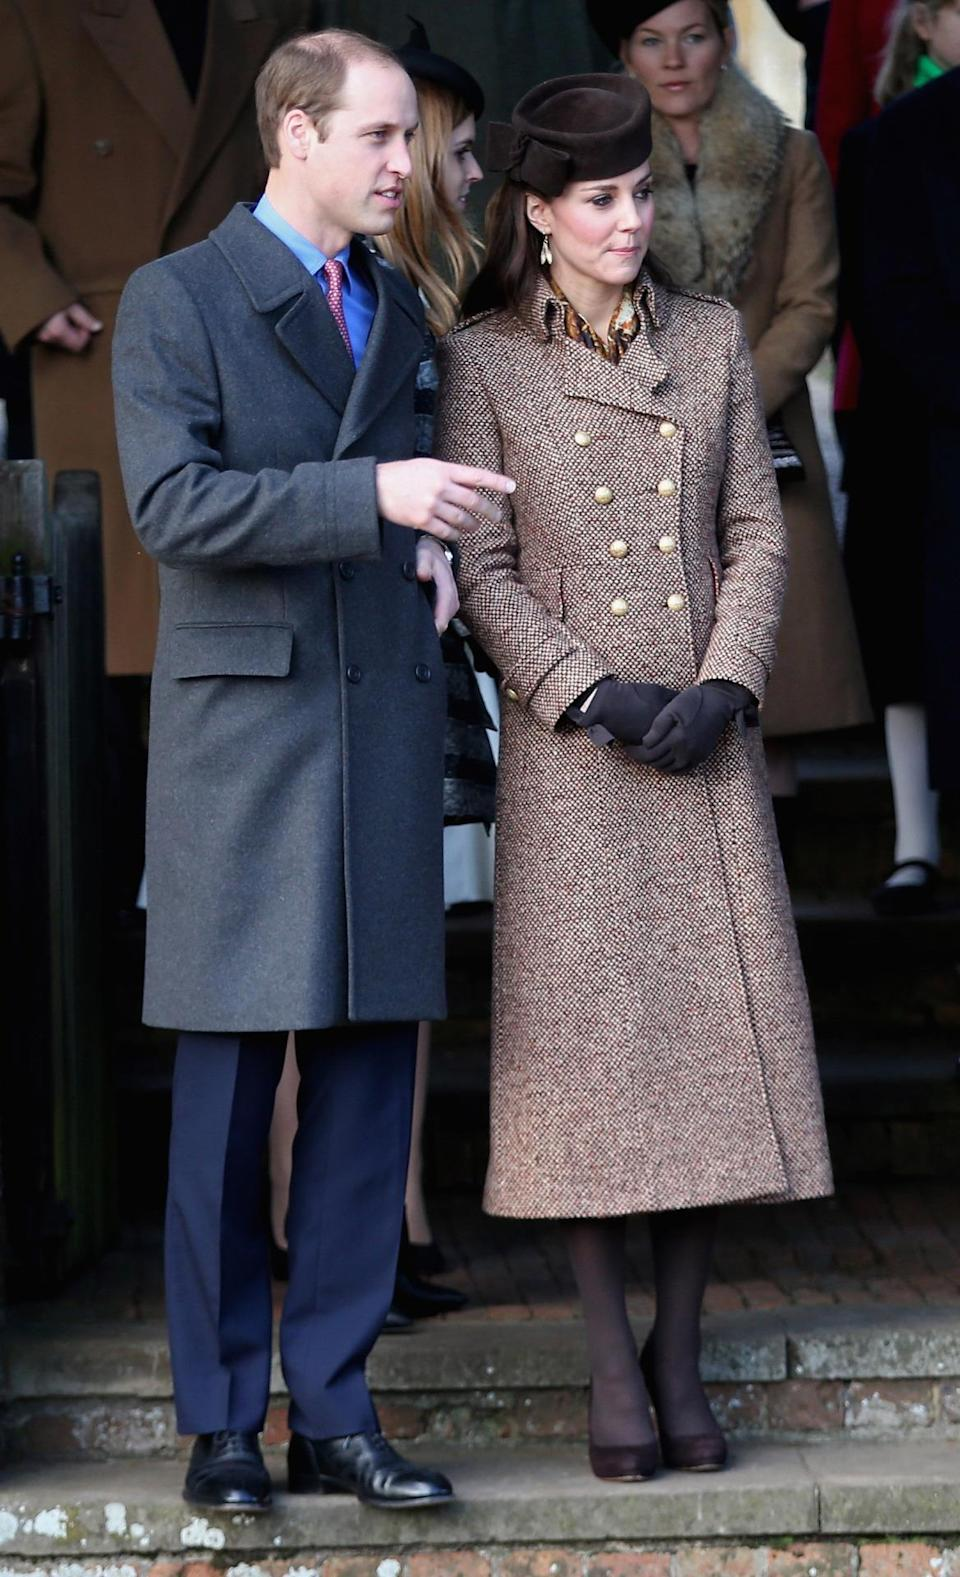 <p>Kate went for a sophisticated look for Christmas 2014. Wearing a brown tweed coat by Moloh, she accessorised with a matching Lock & Co hat, a printed silk scarf and brown heels by Emmy London.</p><p><i>[Photo: Getty]</i></p>